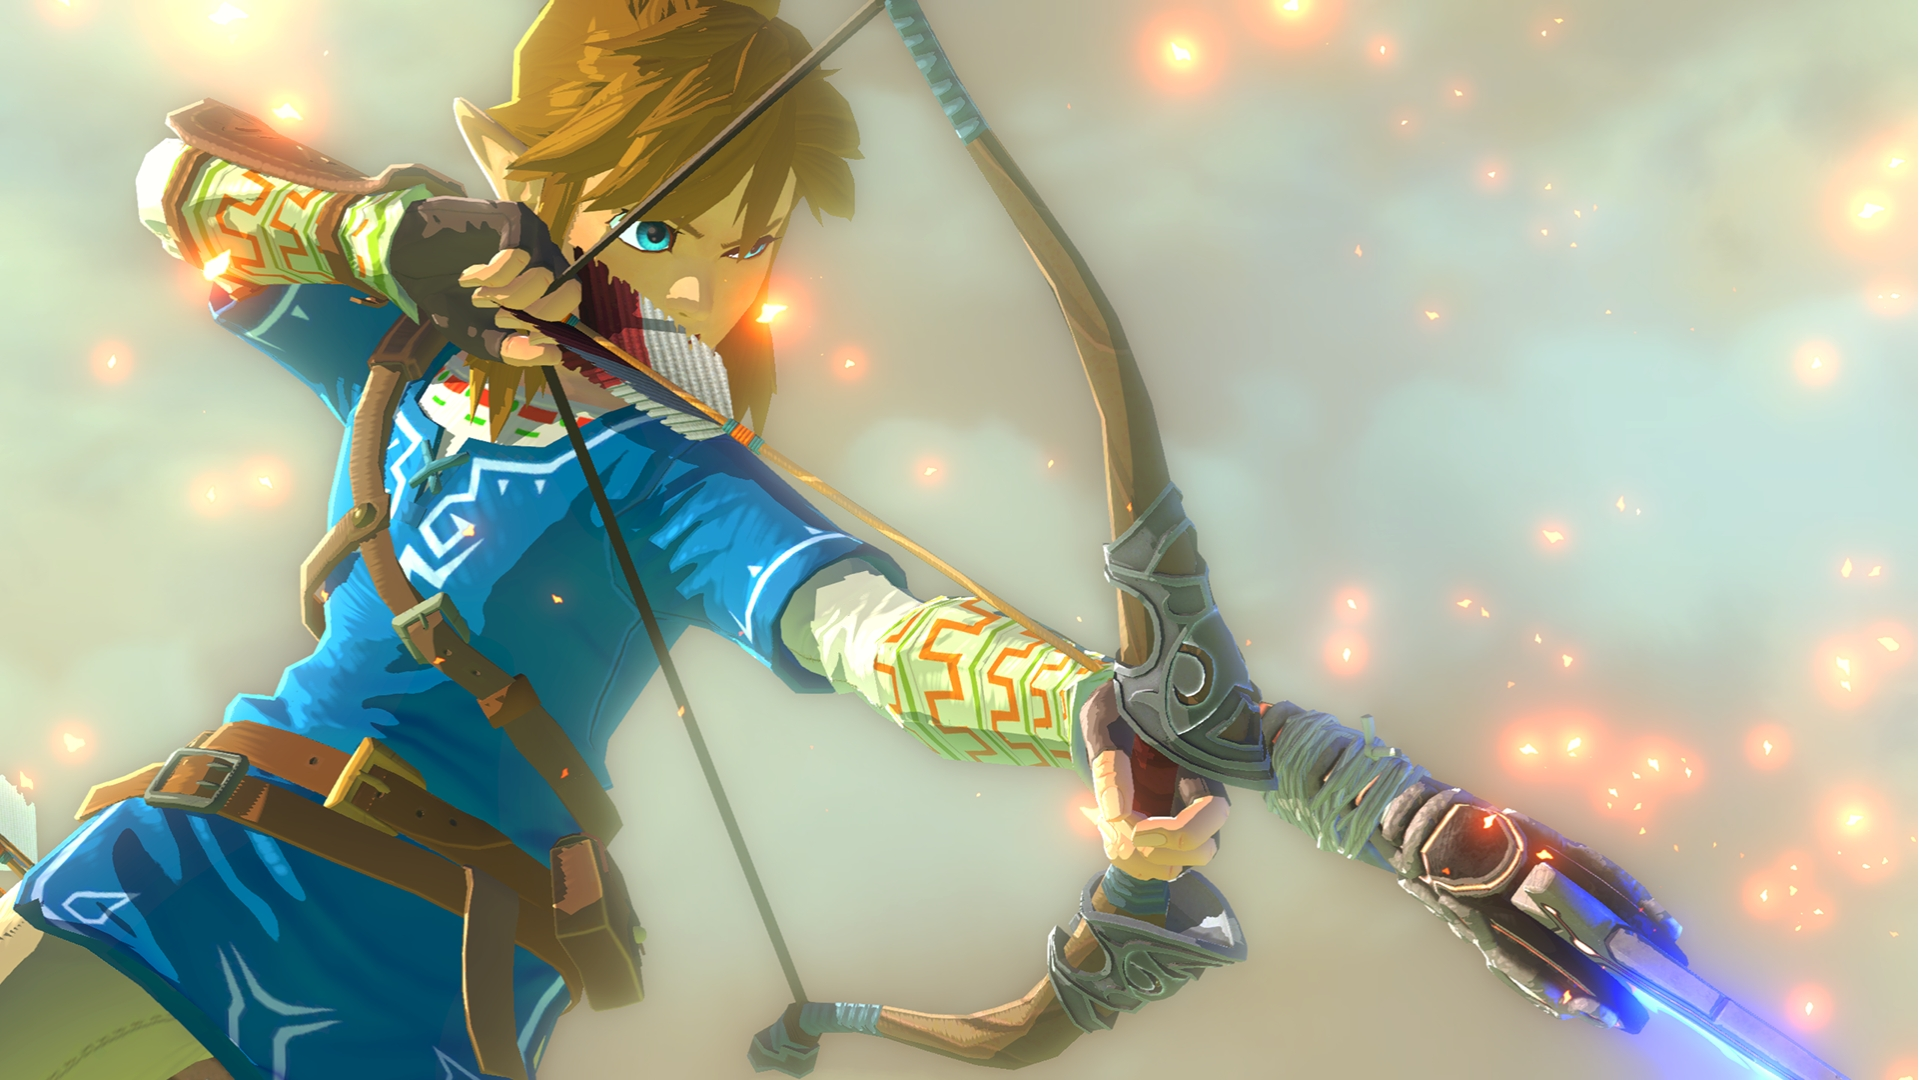 Breath of the Wild closing out Wii U for Nintendo